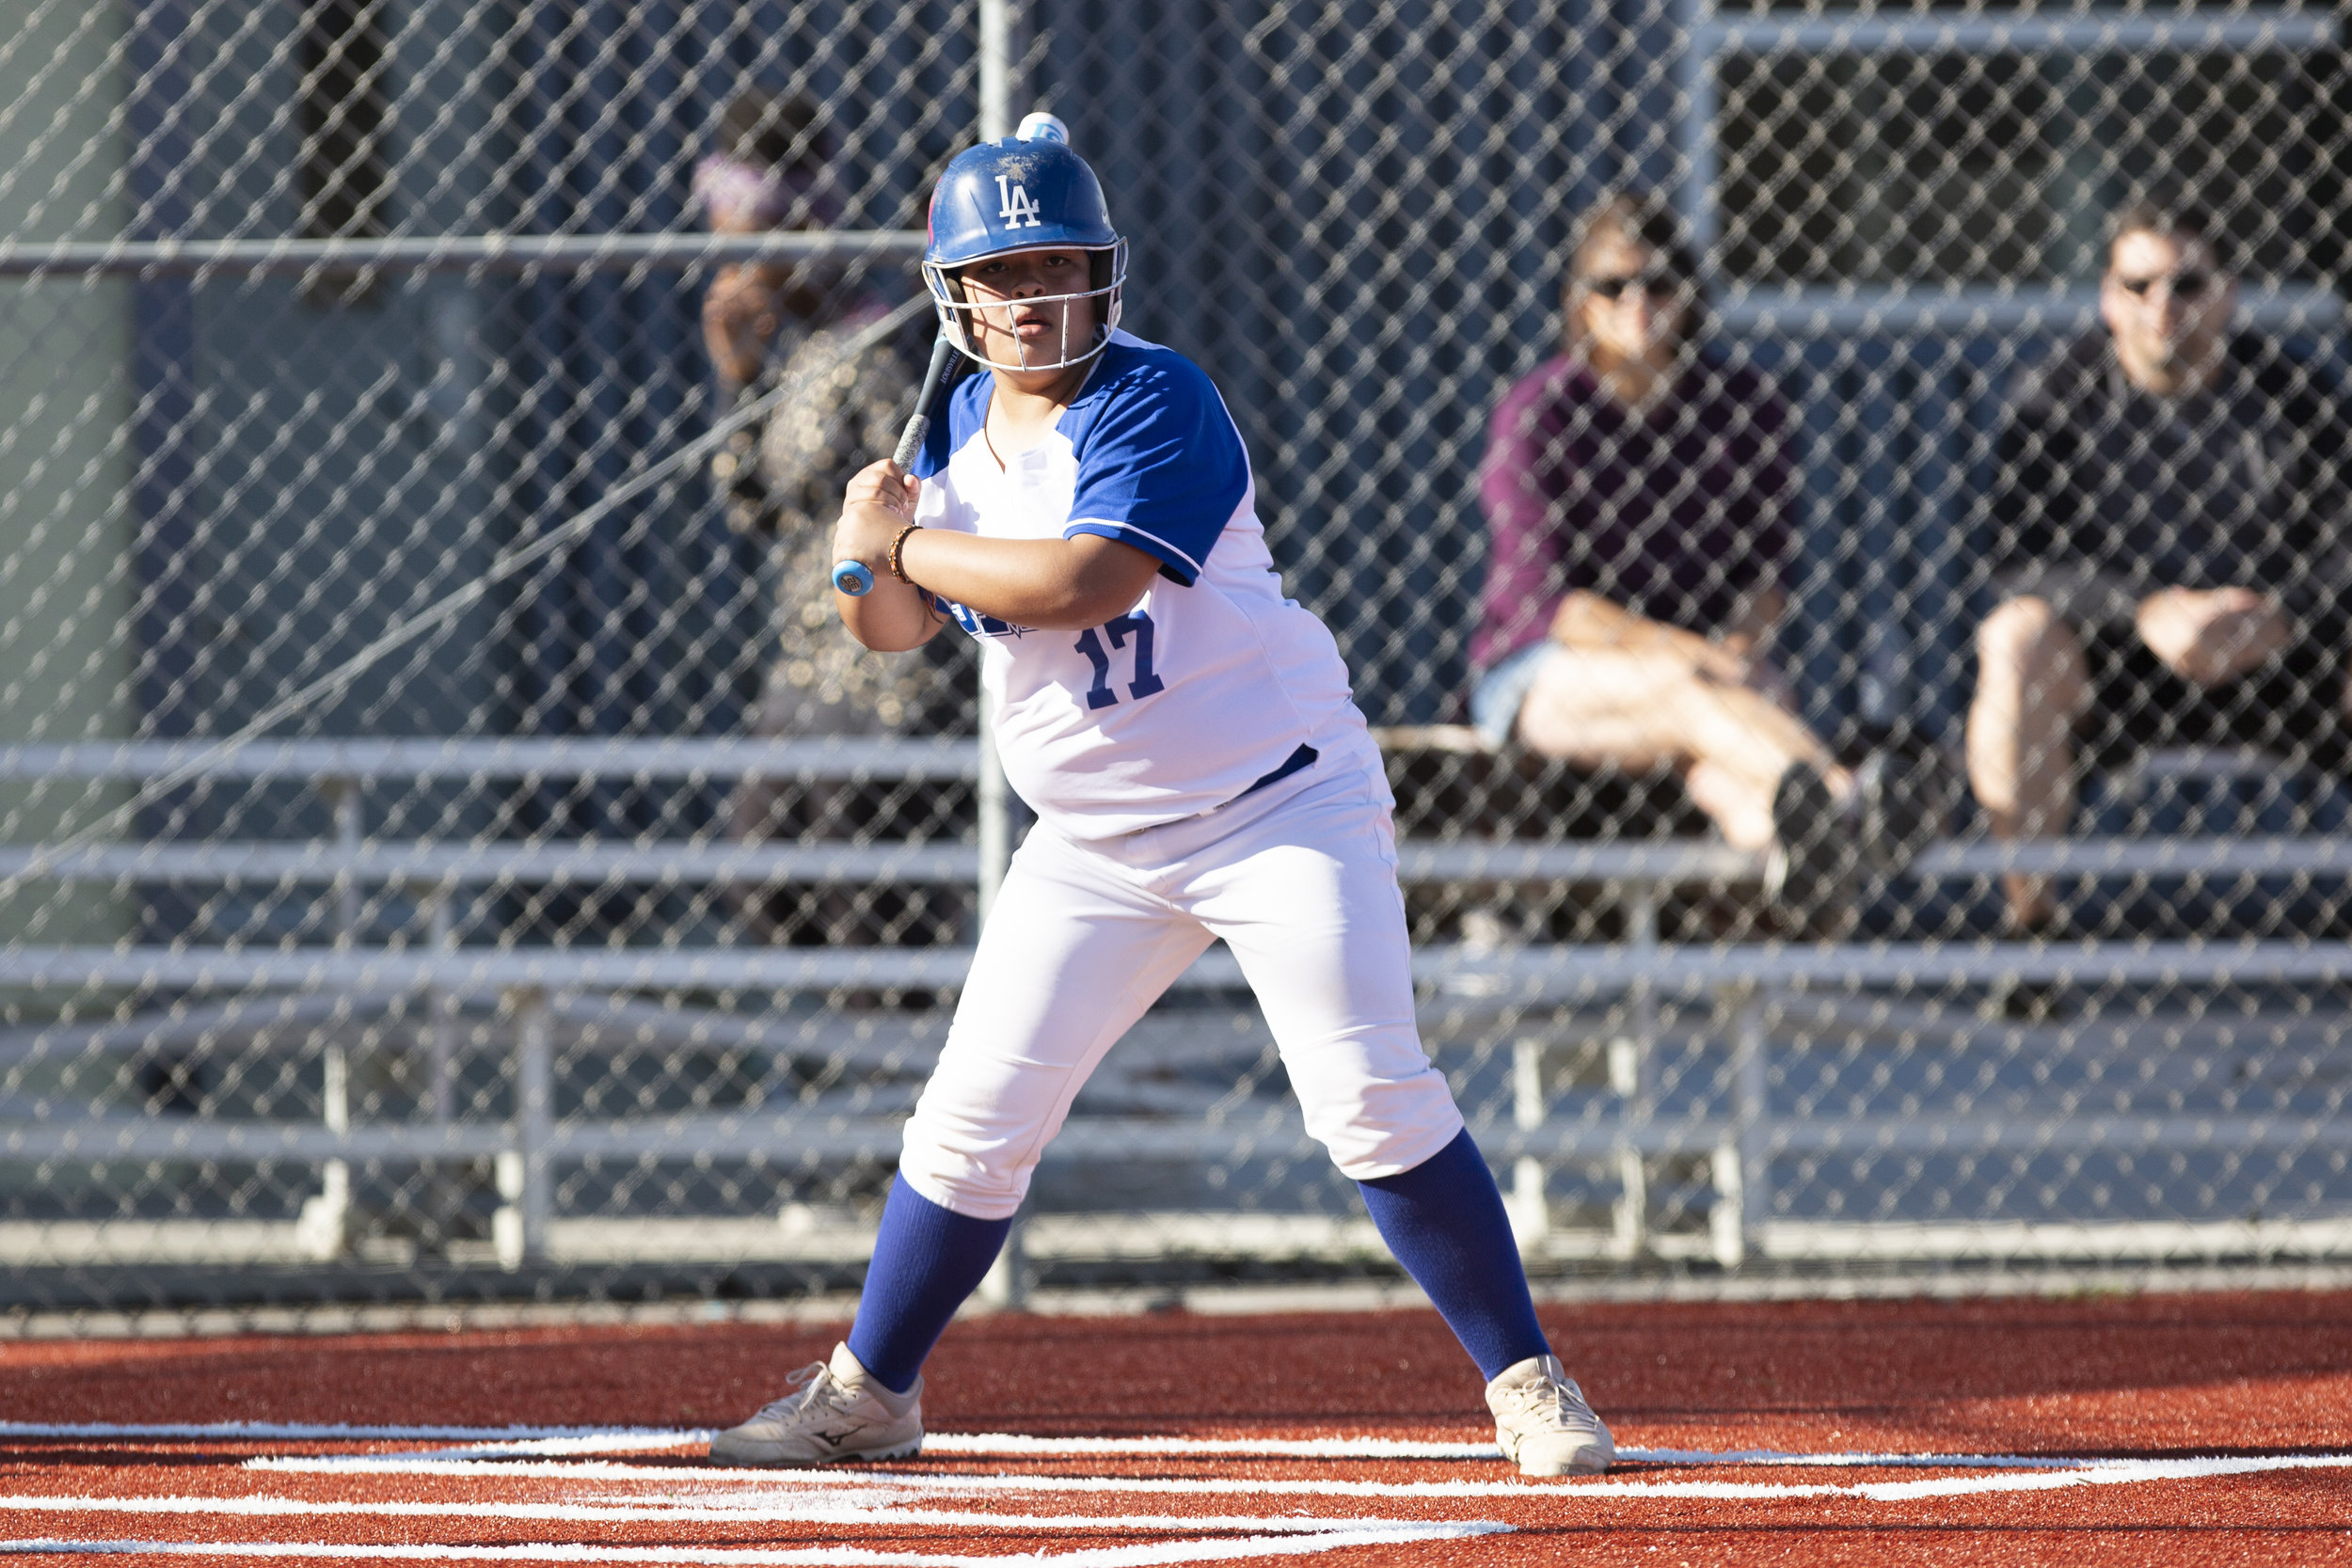 Chica Sancez, from Santa Monica College softball team playing at home vs Moorpark team, Thursday, March 7, 2019 in Santa Monica, Calif.